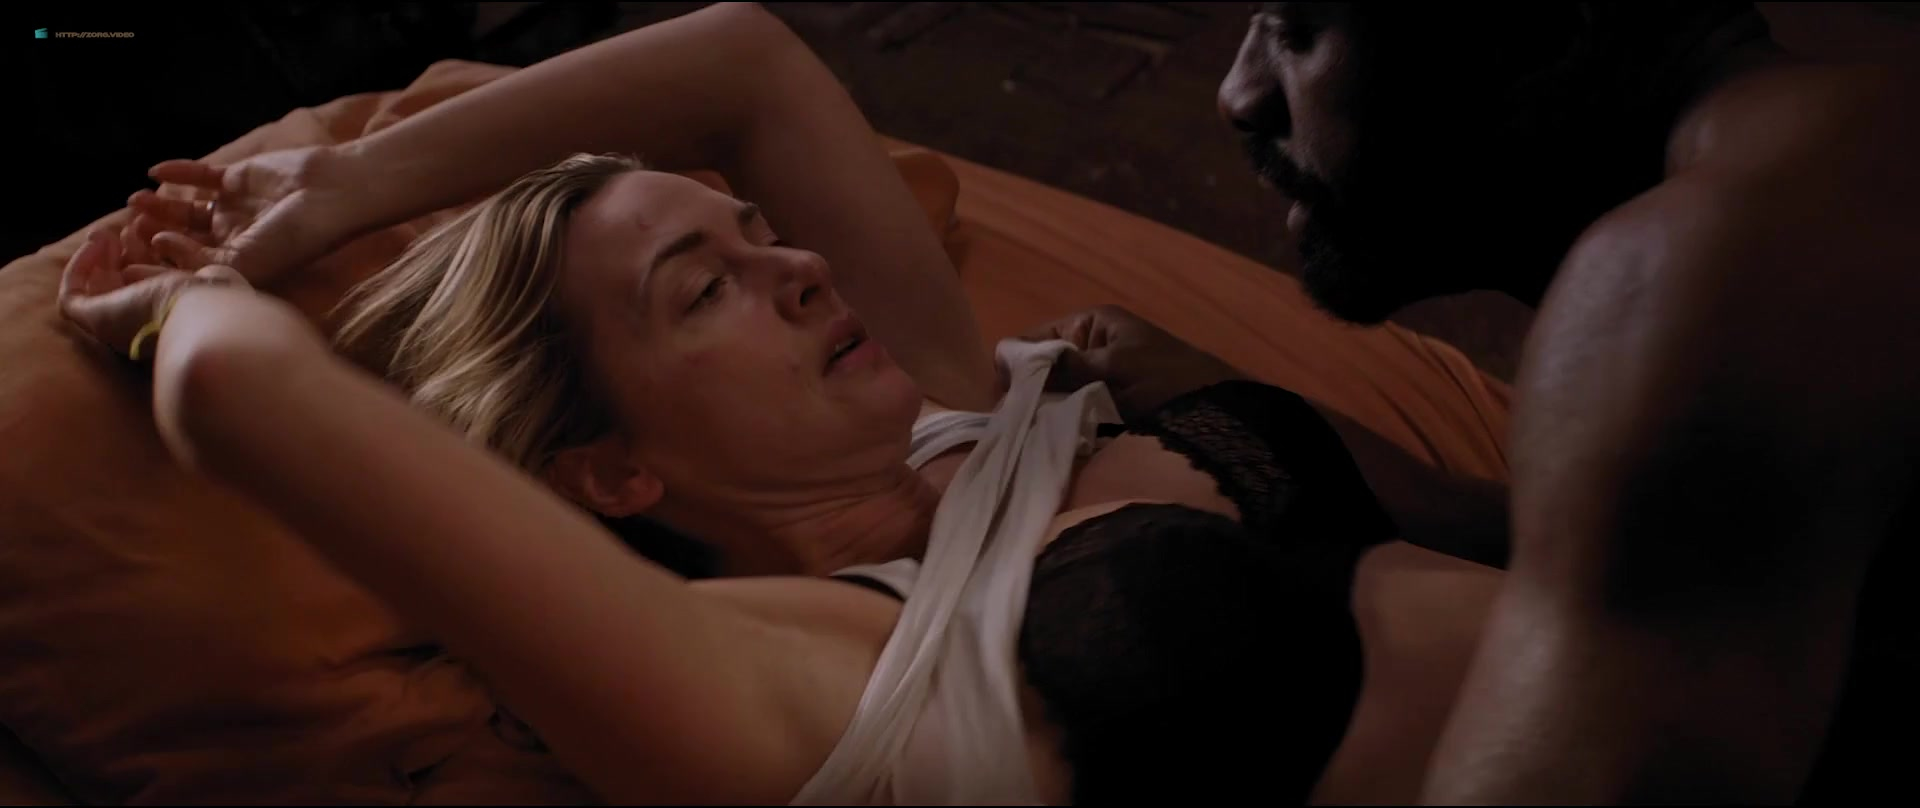 Kate winslet sex pic-1560